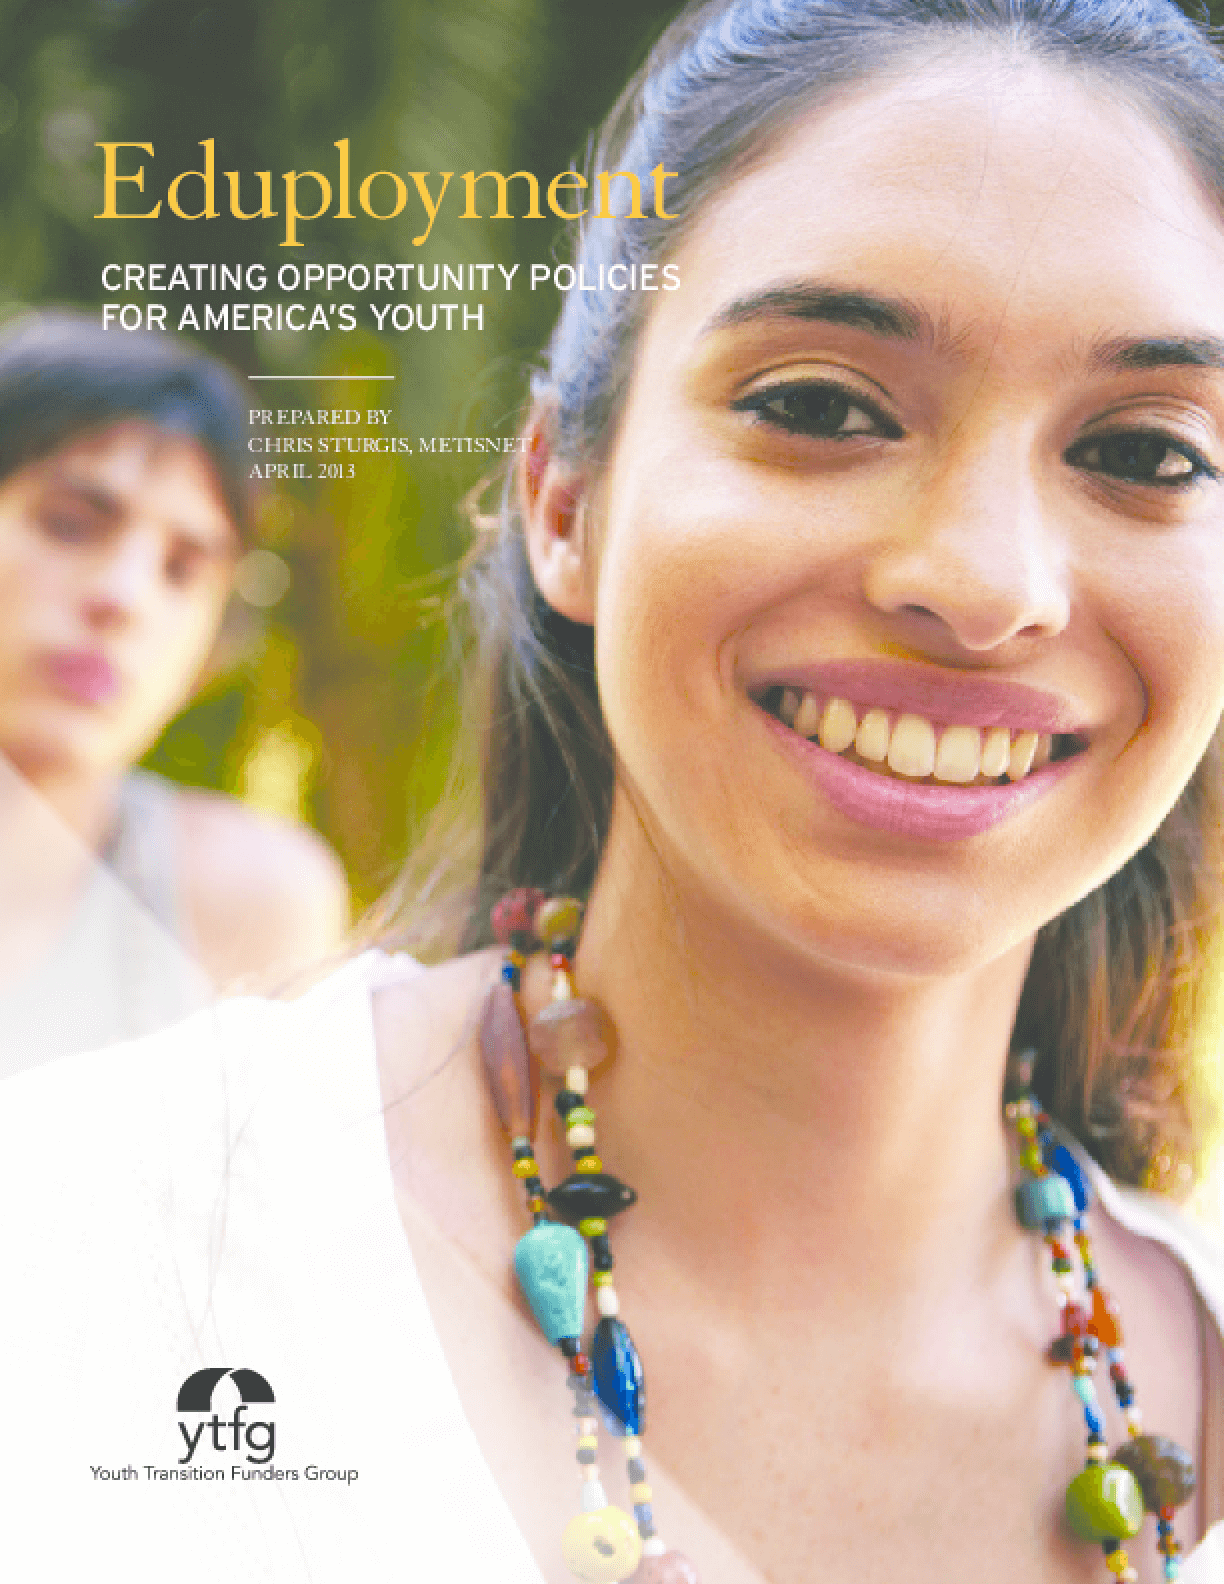 Eduployment: Creating Opportunity Policies for America's Youth